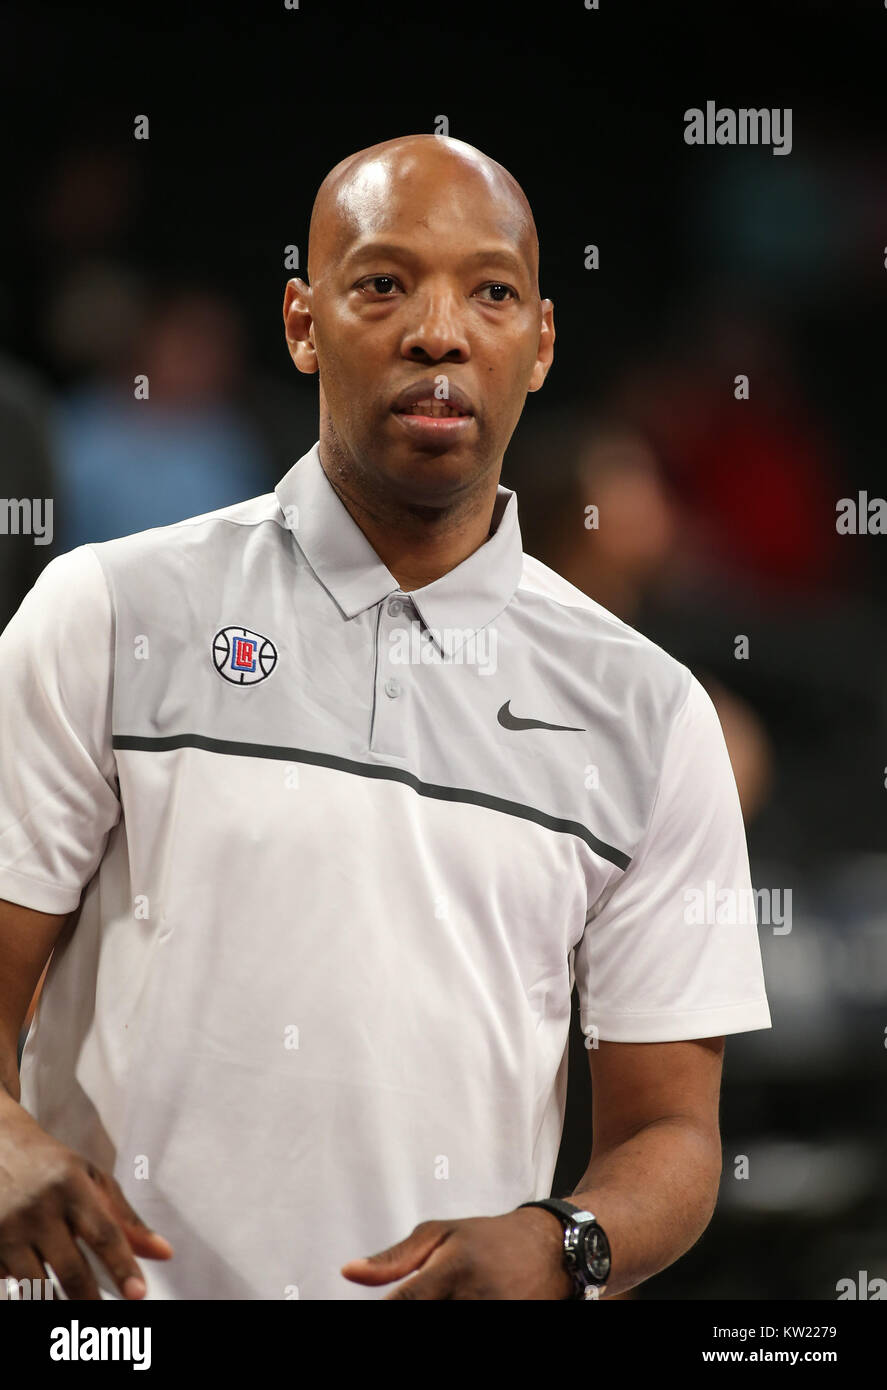 Los Angeles, CA, USA. 29 Dez, 2017. LA Clippers Assistant Coach SAM Cassell, bevor die Los Angeles Clippers vs Los Stockfoto